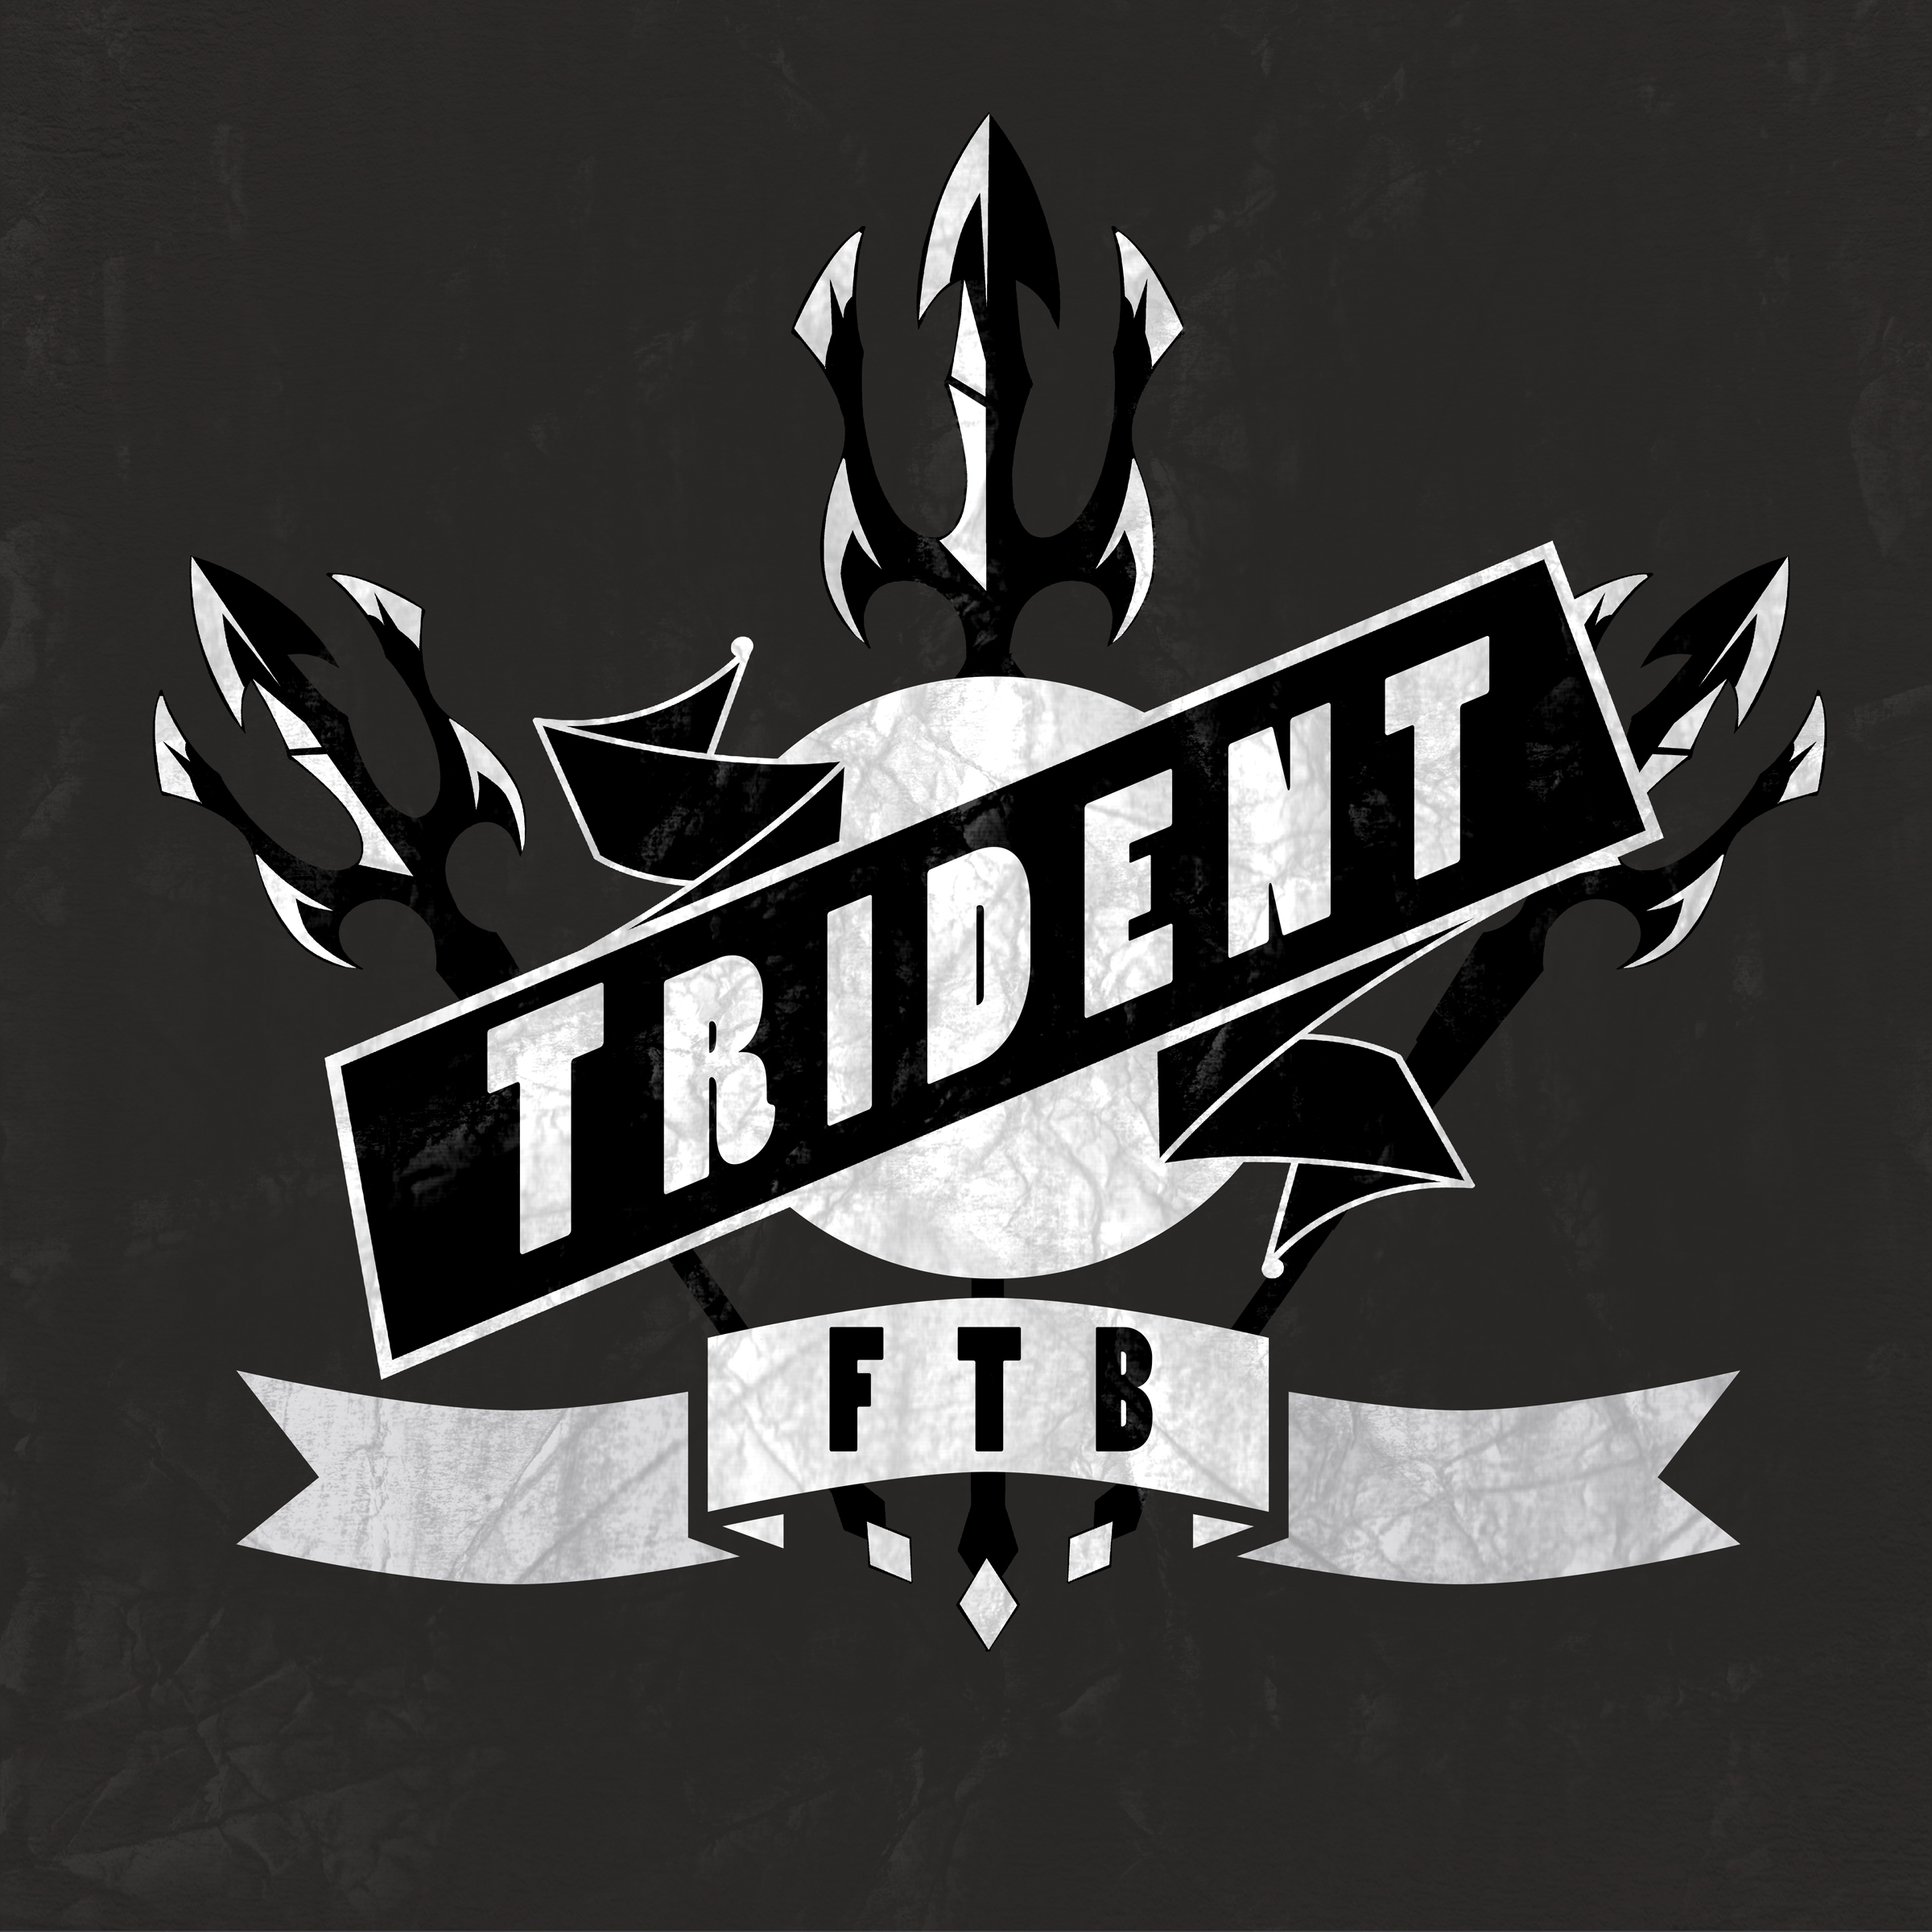 Start Your Own Minecraft FTB Trident Server - Curse minecraft server erstellen